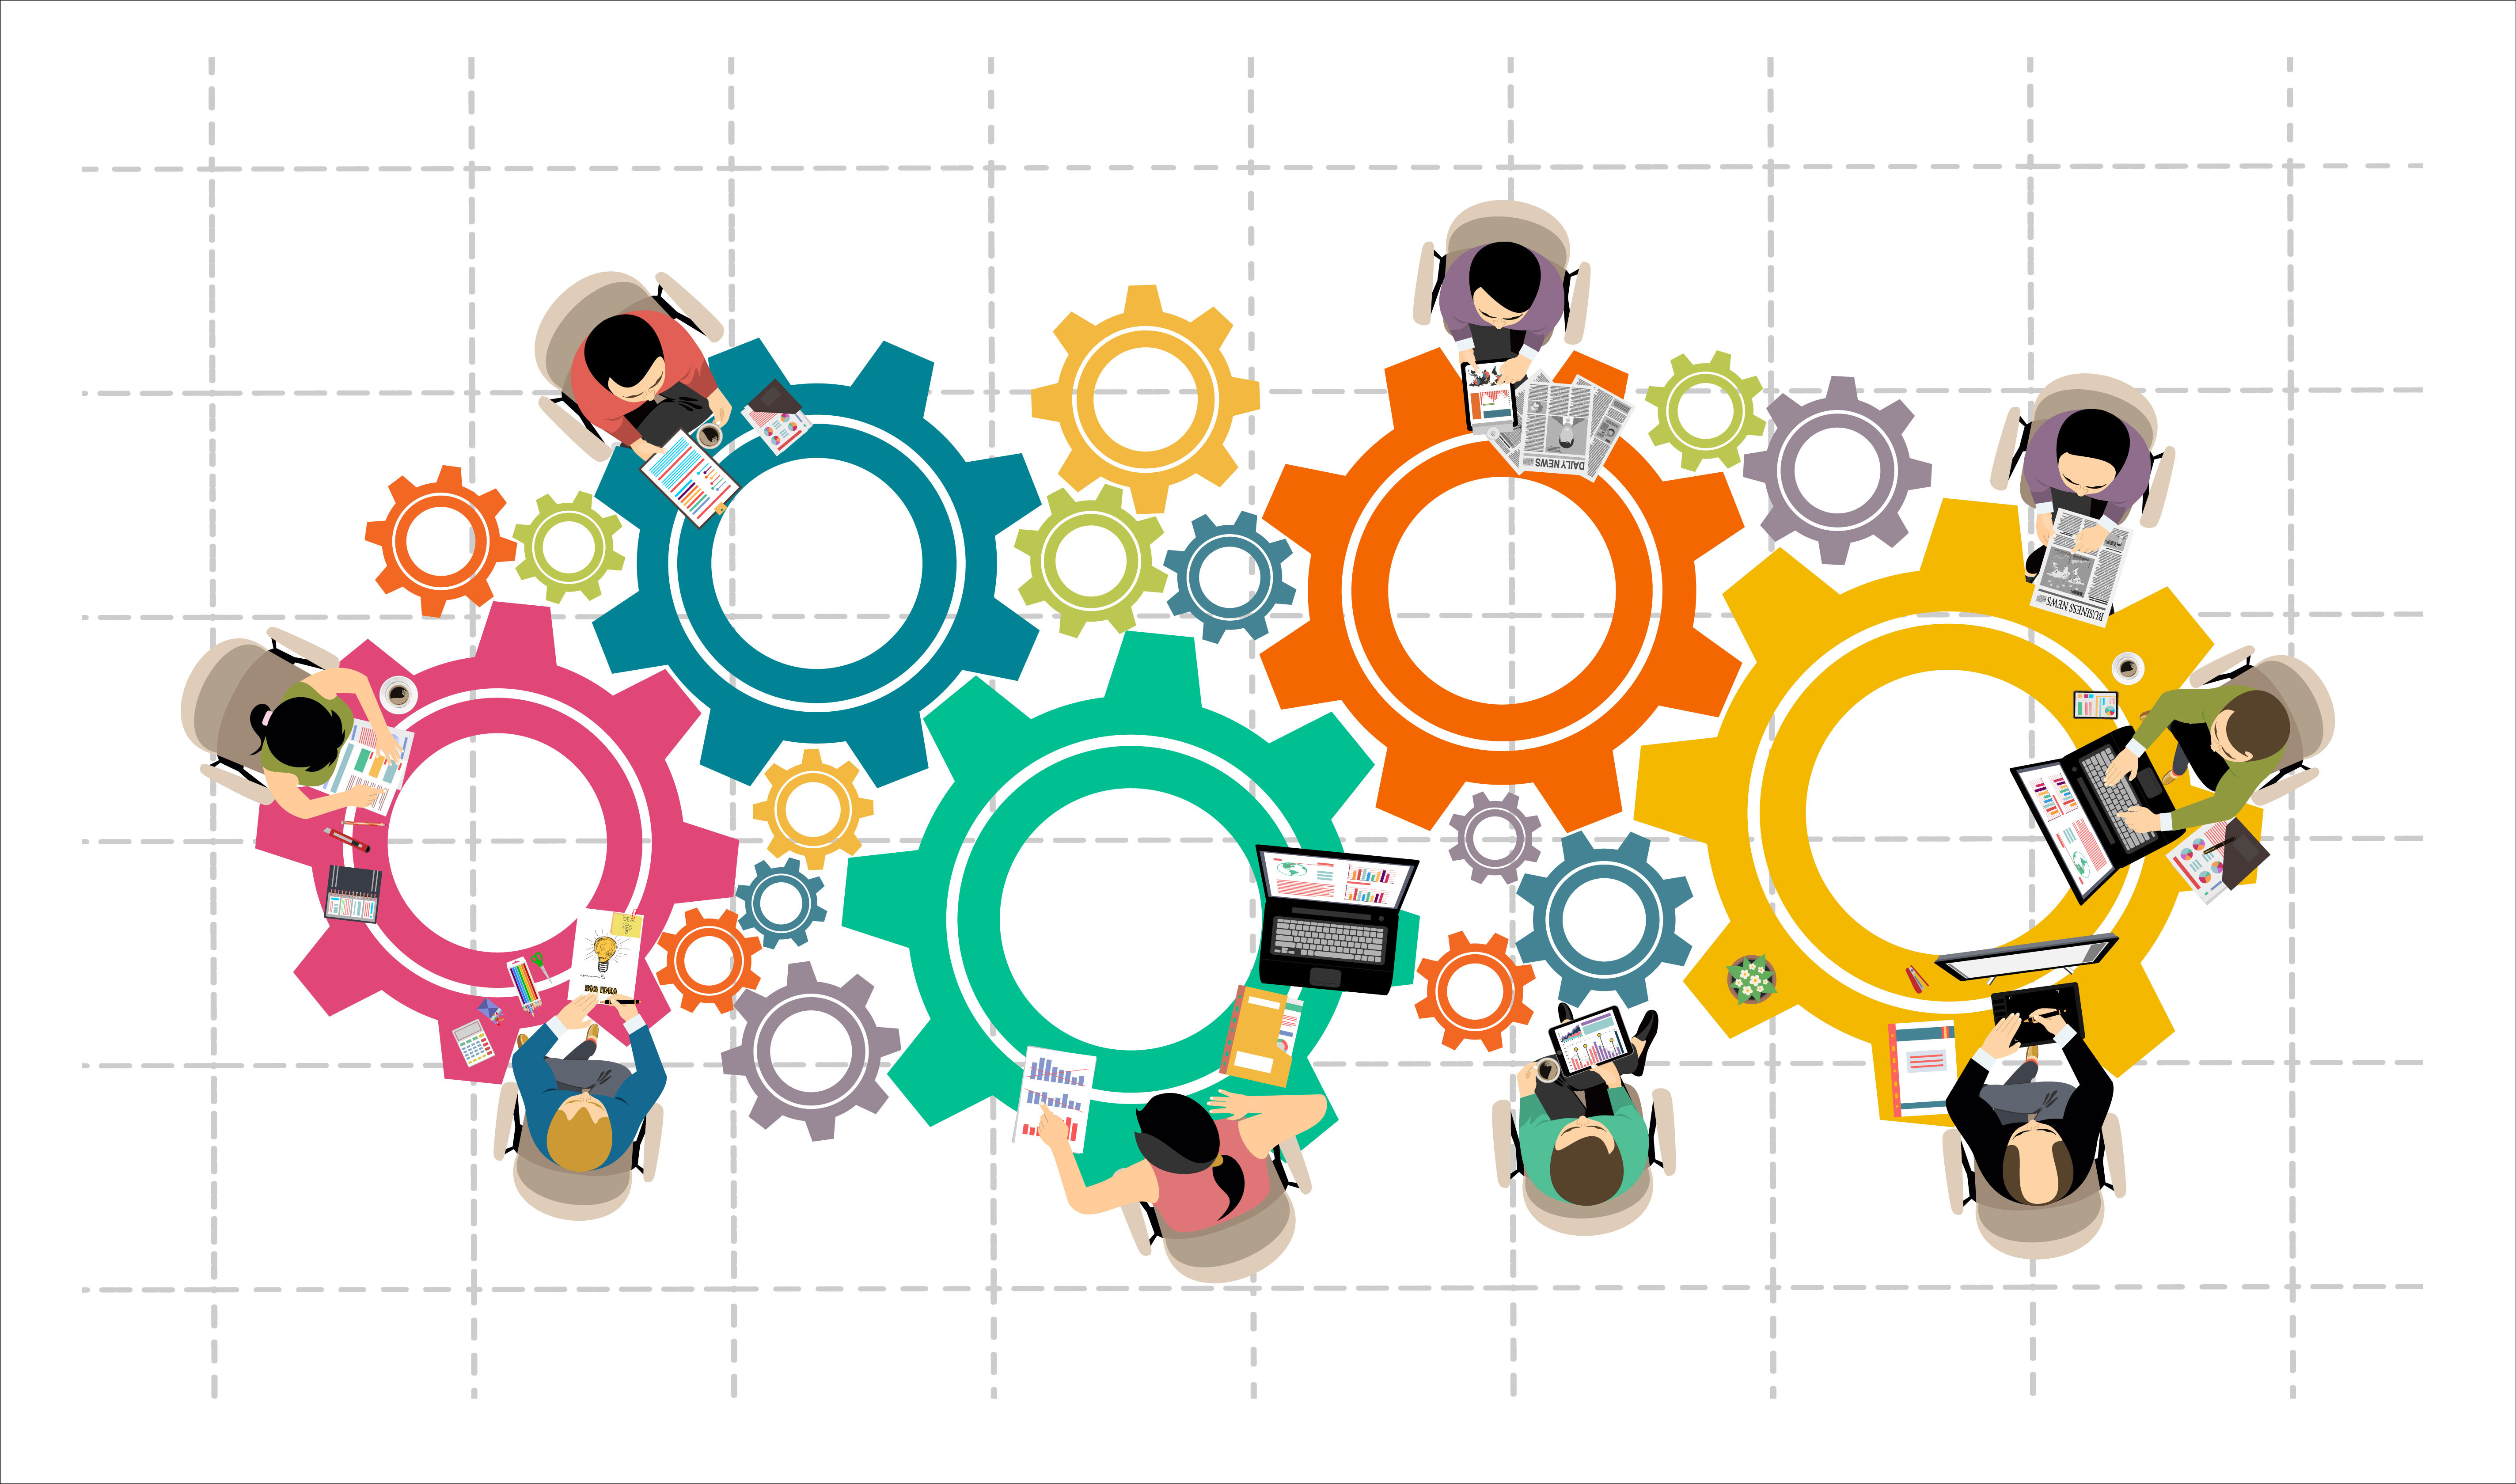 Professionals as cogs in a machine illustration